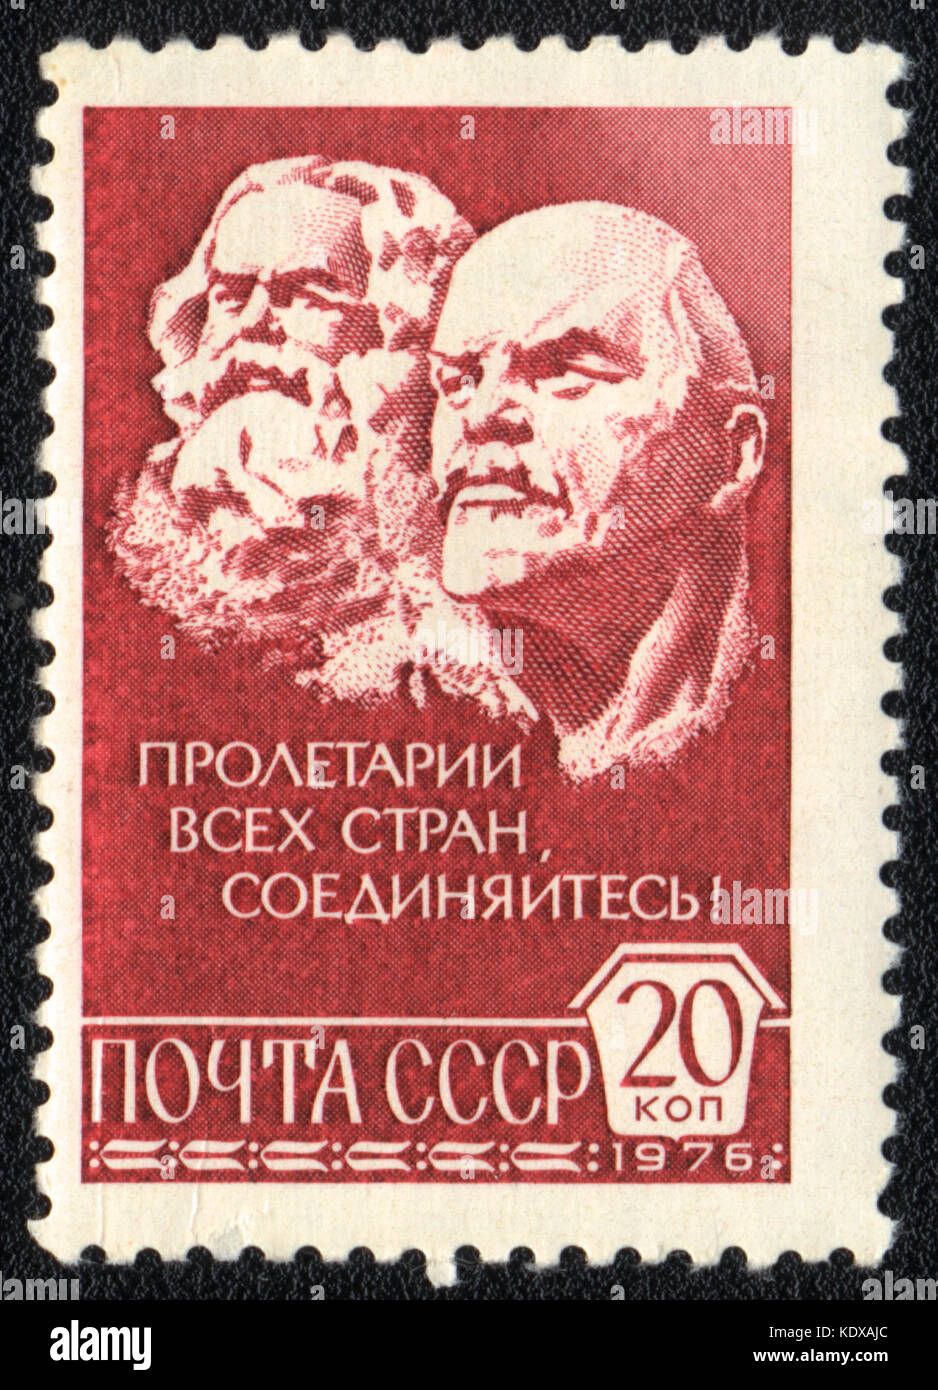 a-postage-stamp-printed-in-ussr-shows-wo